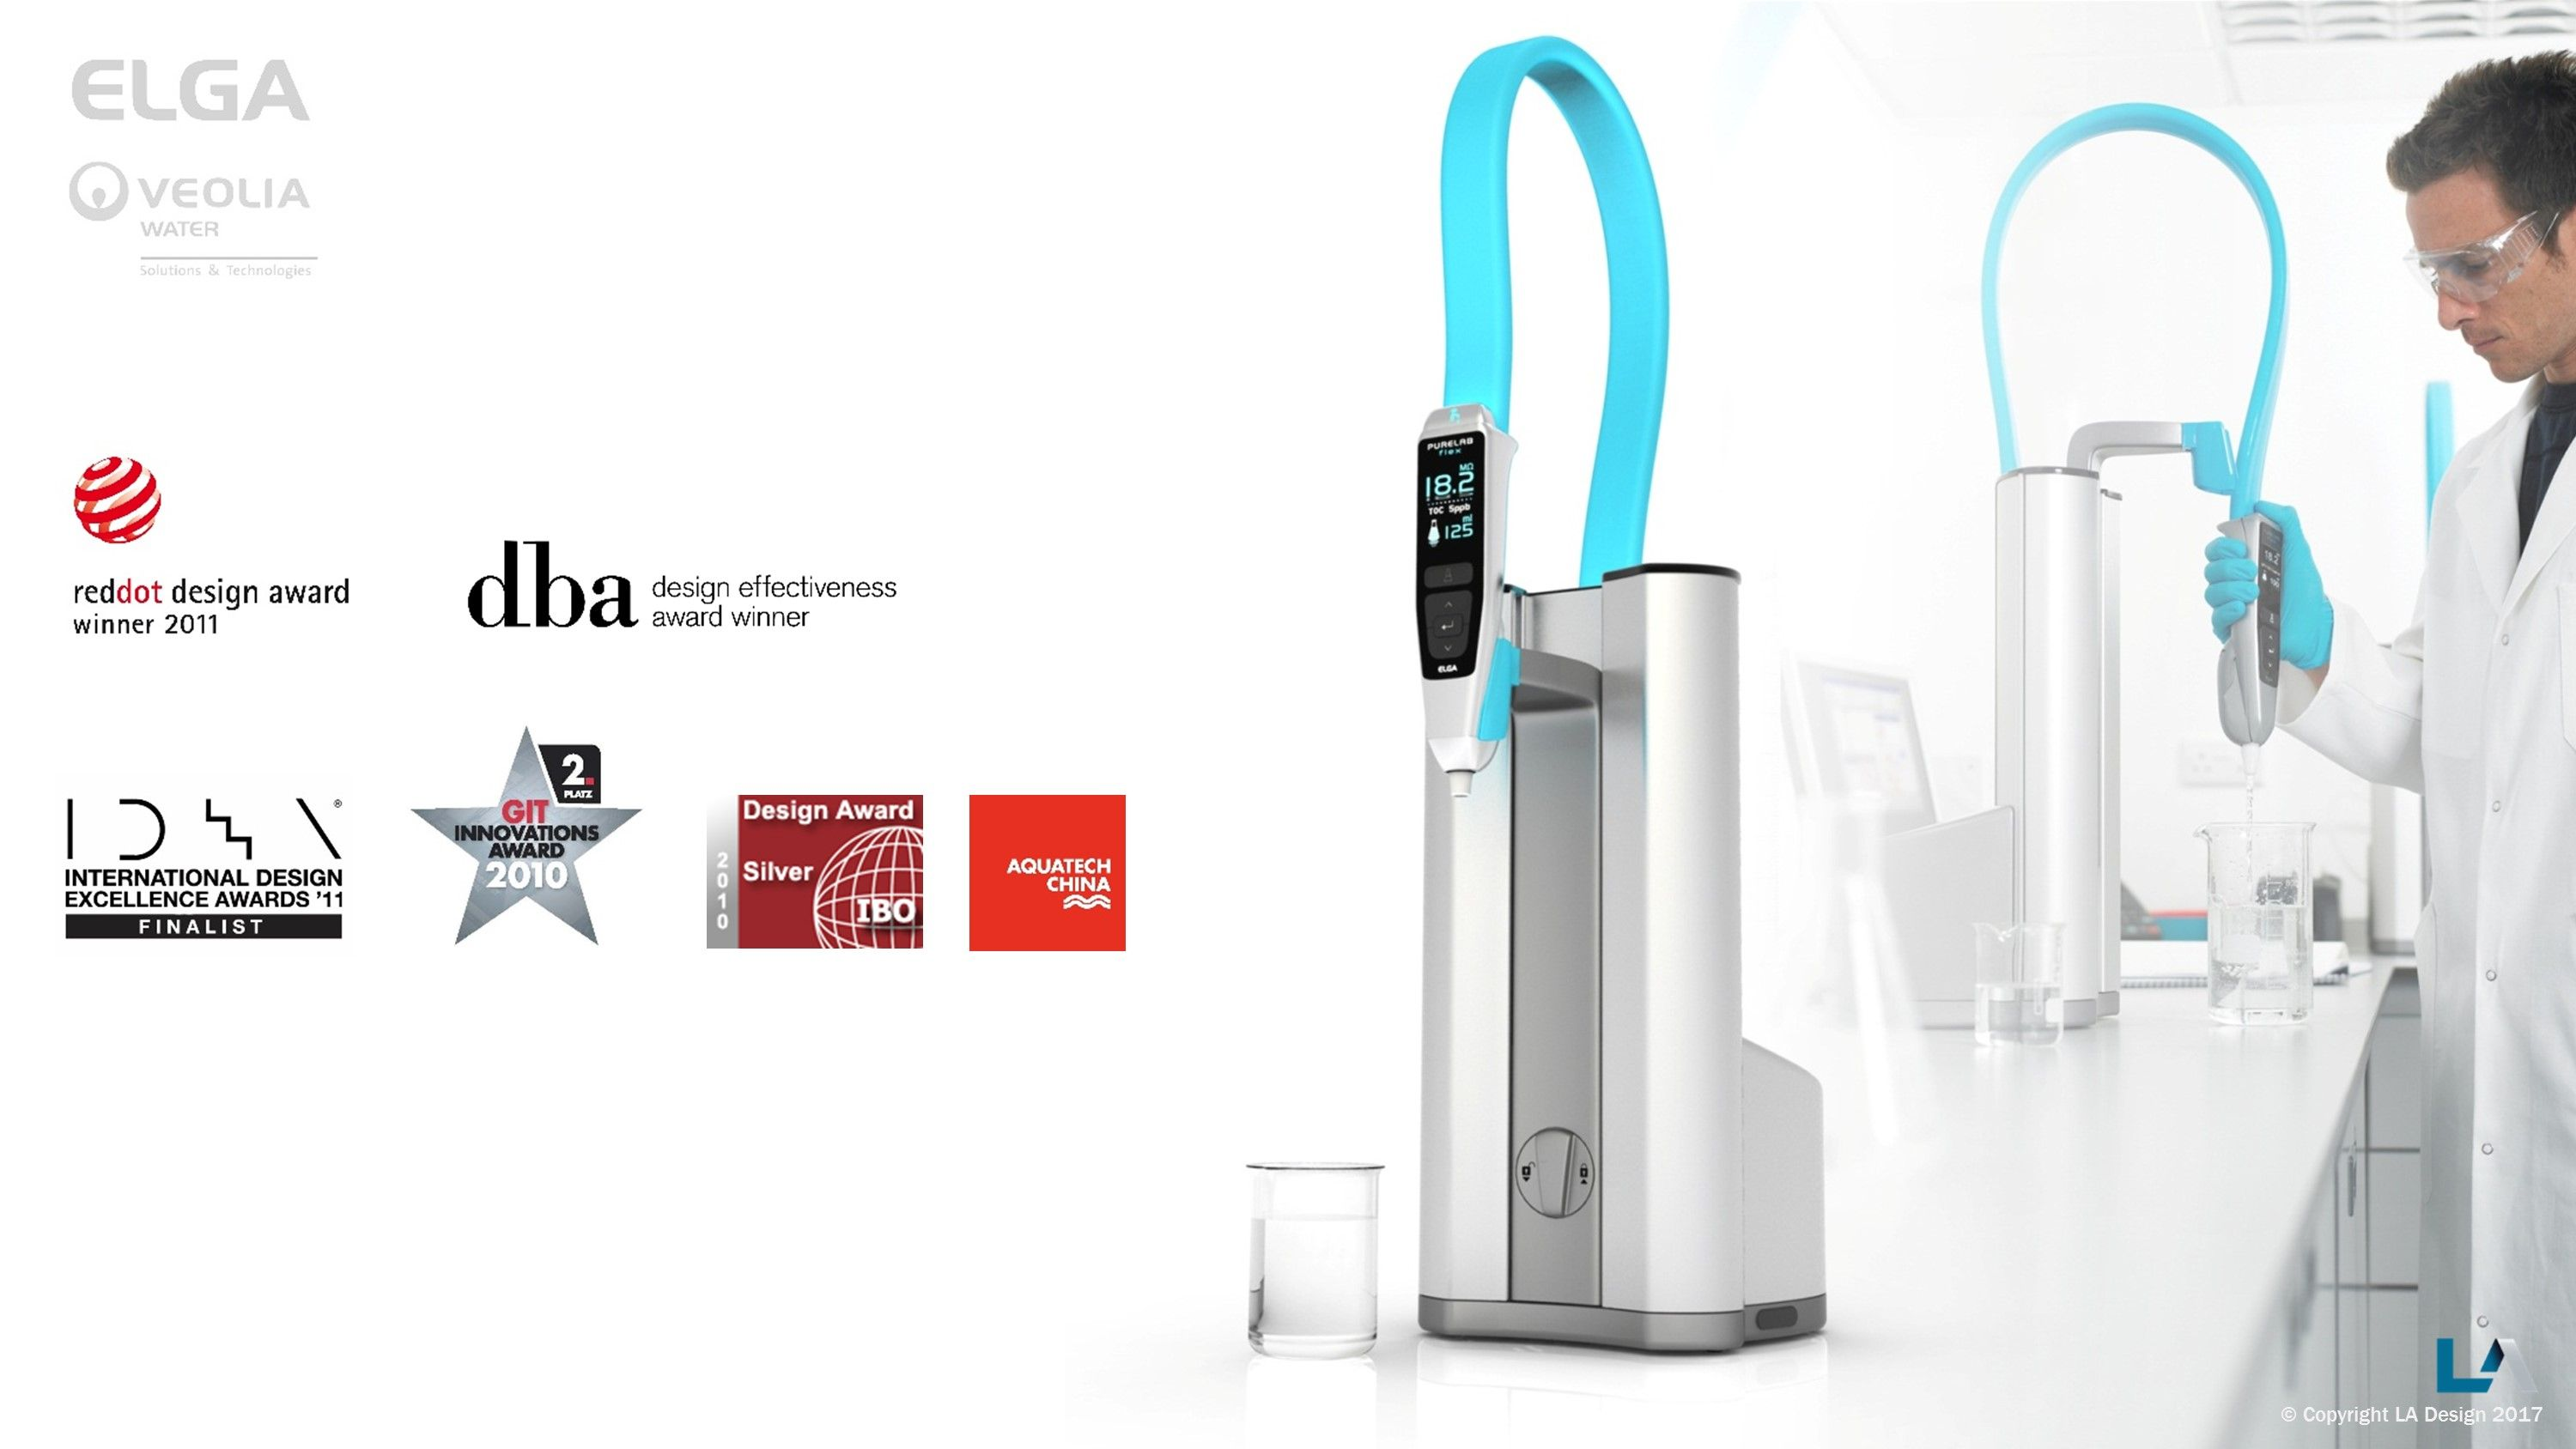 Purelab Flex La Has Built Up A Strong Relationship With Elga Over A Number Of Years Based On The Roi Coming From G Industrial Design Engineering Design Design